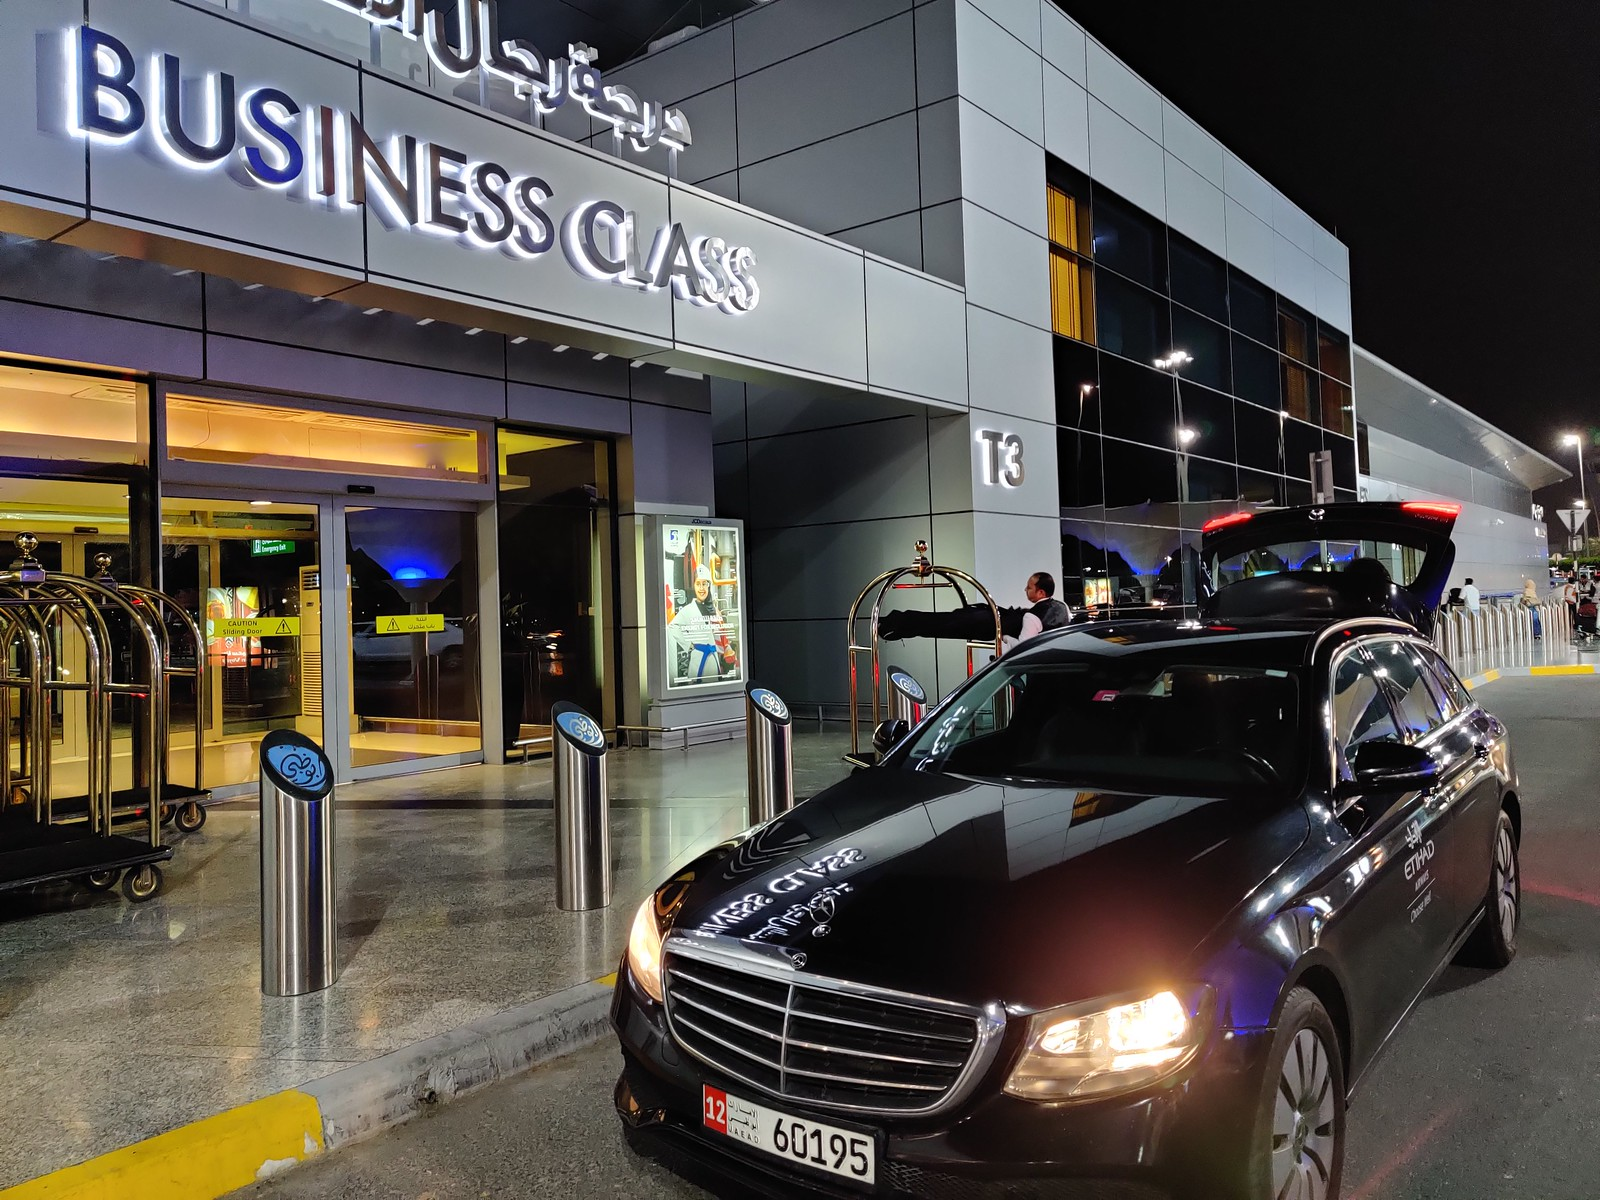 Etihad chauffeur service for Business Class